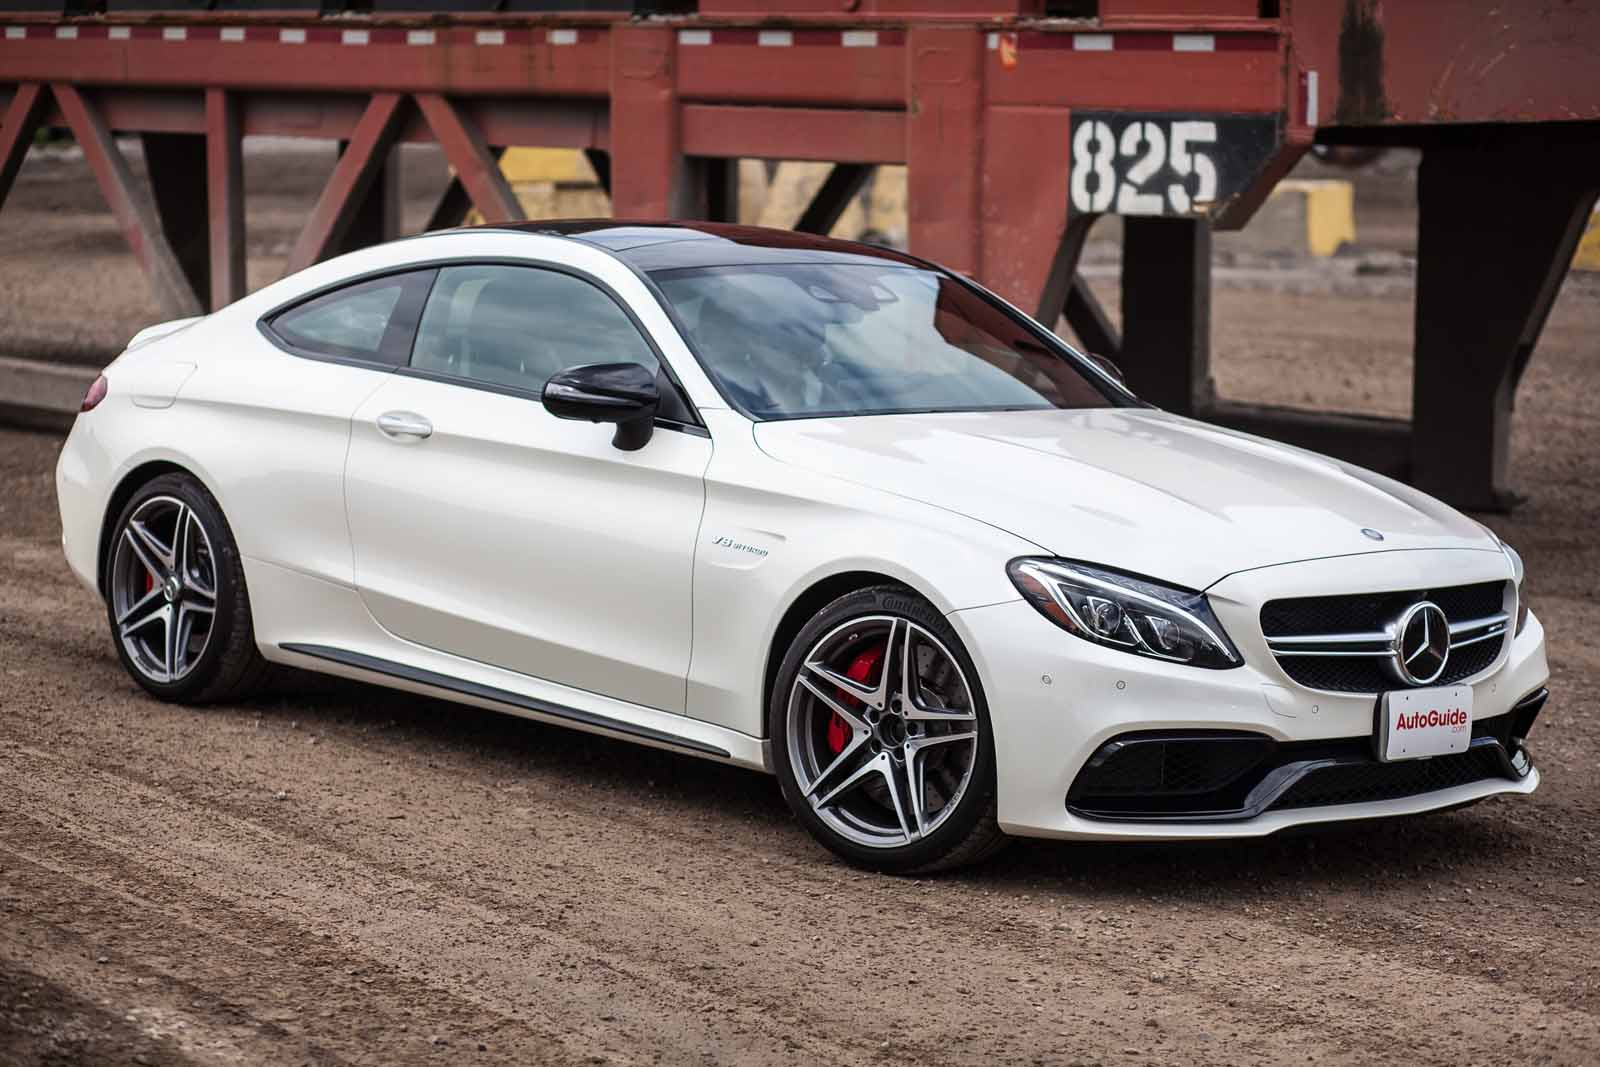 Mercedes Amg C63 S Coupe Fiat World Test Drive